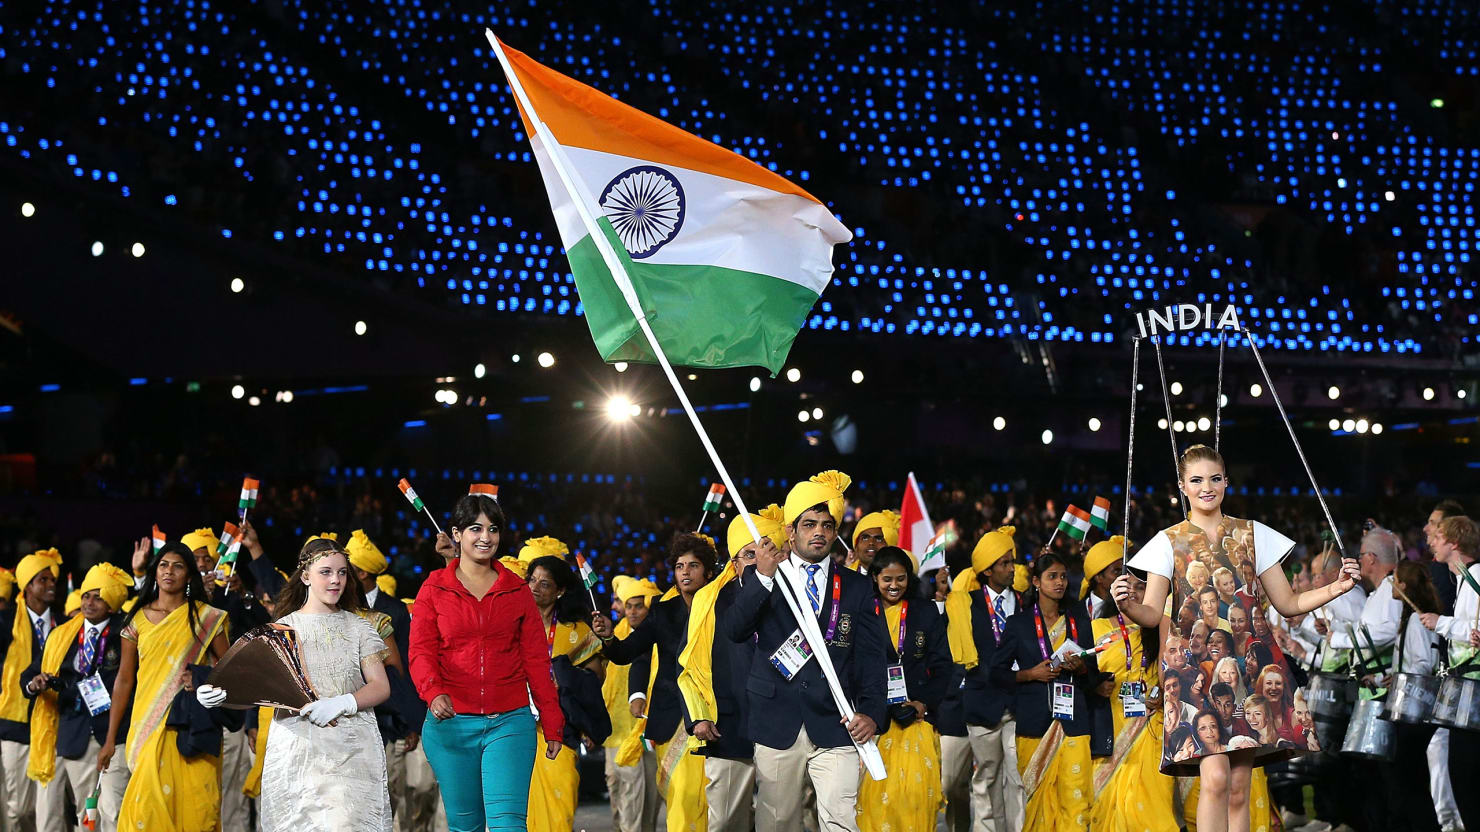 India's Olympic Mess: Why You Won't See the Nation's Flag in Sochi